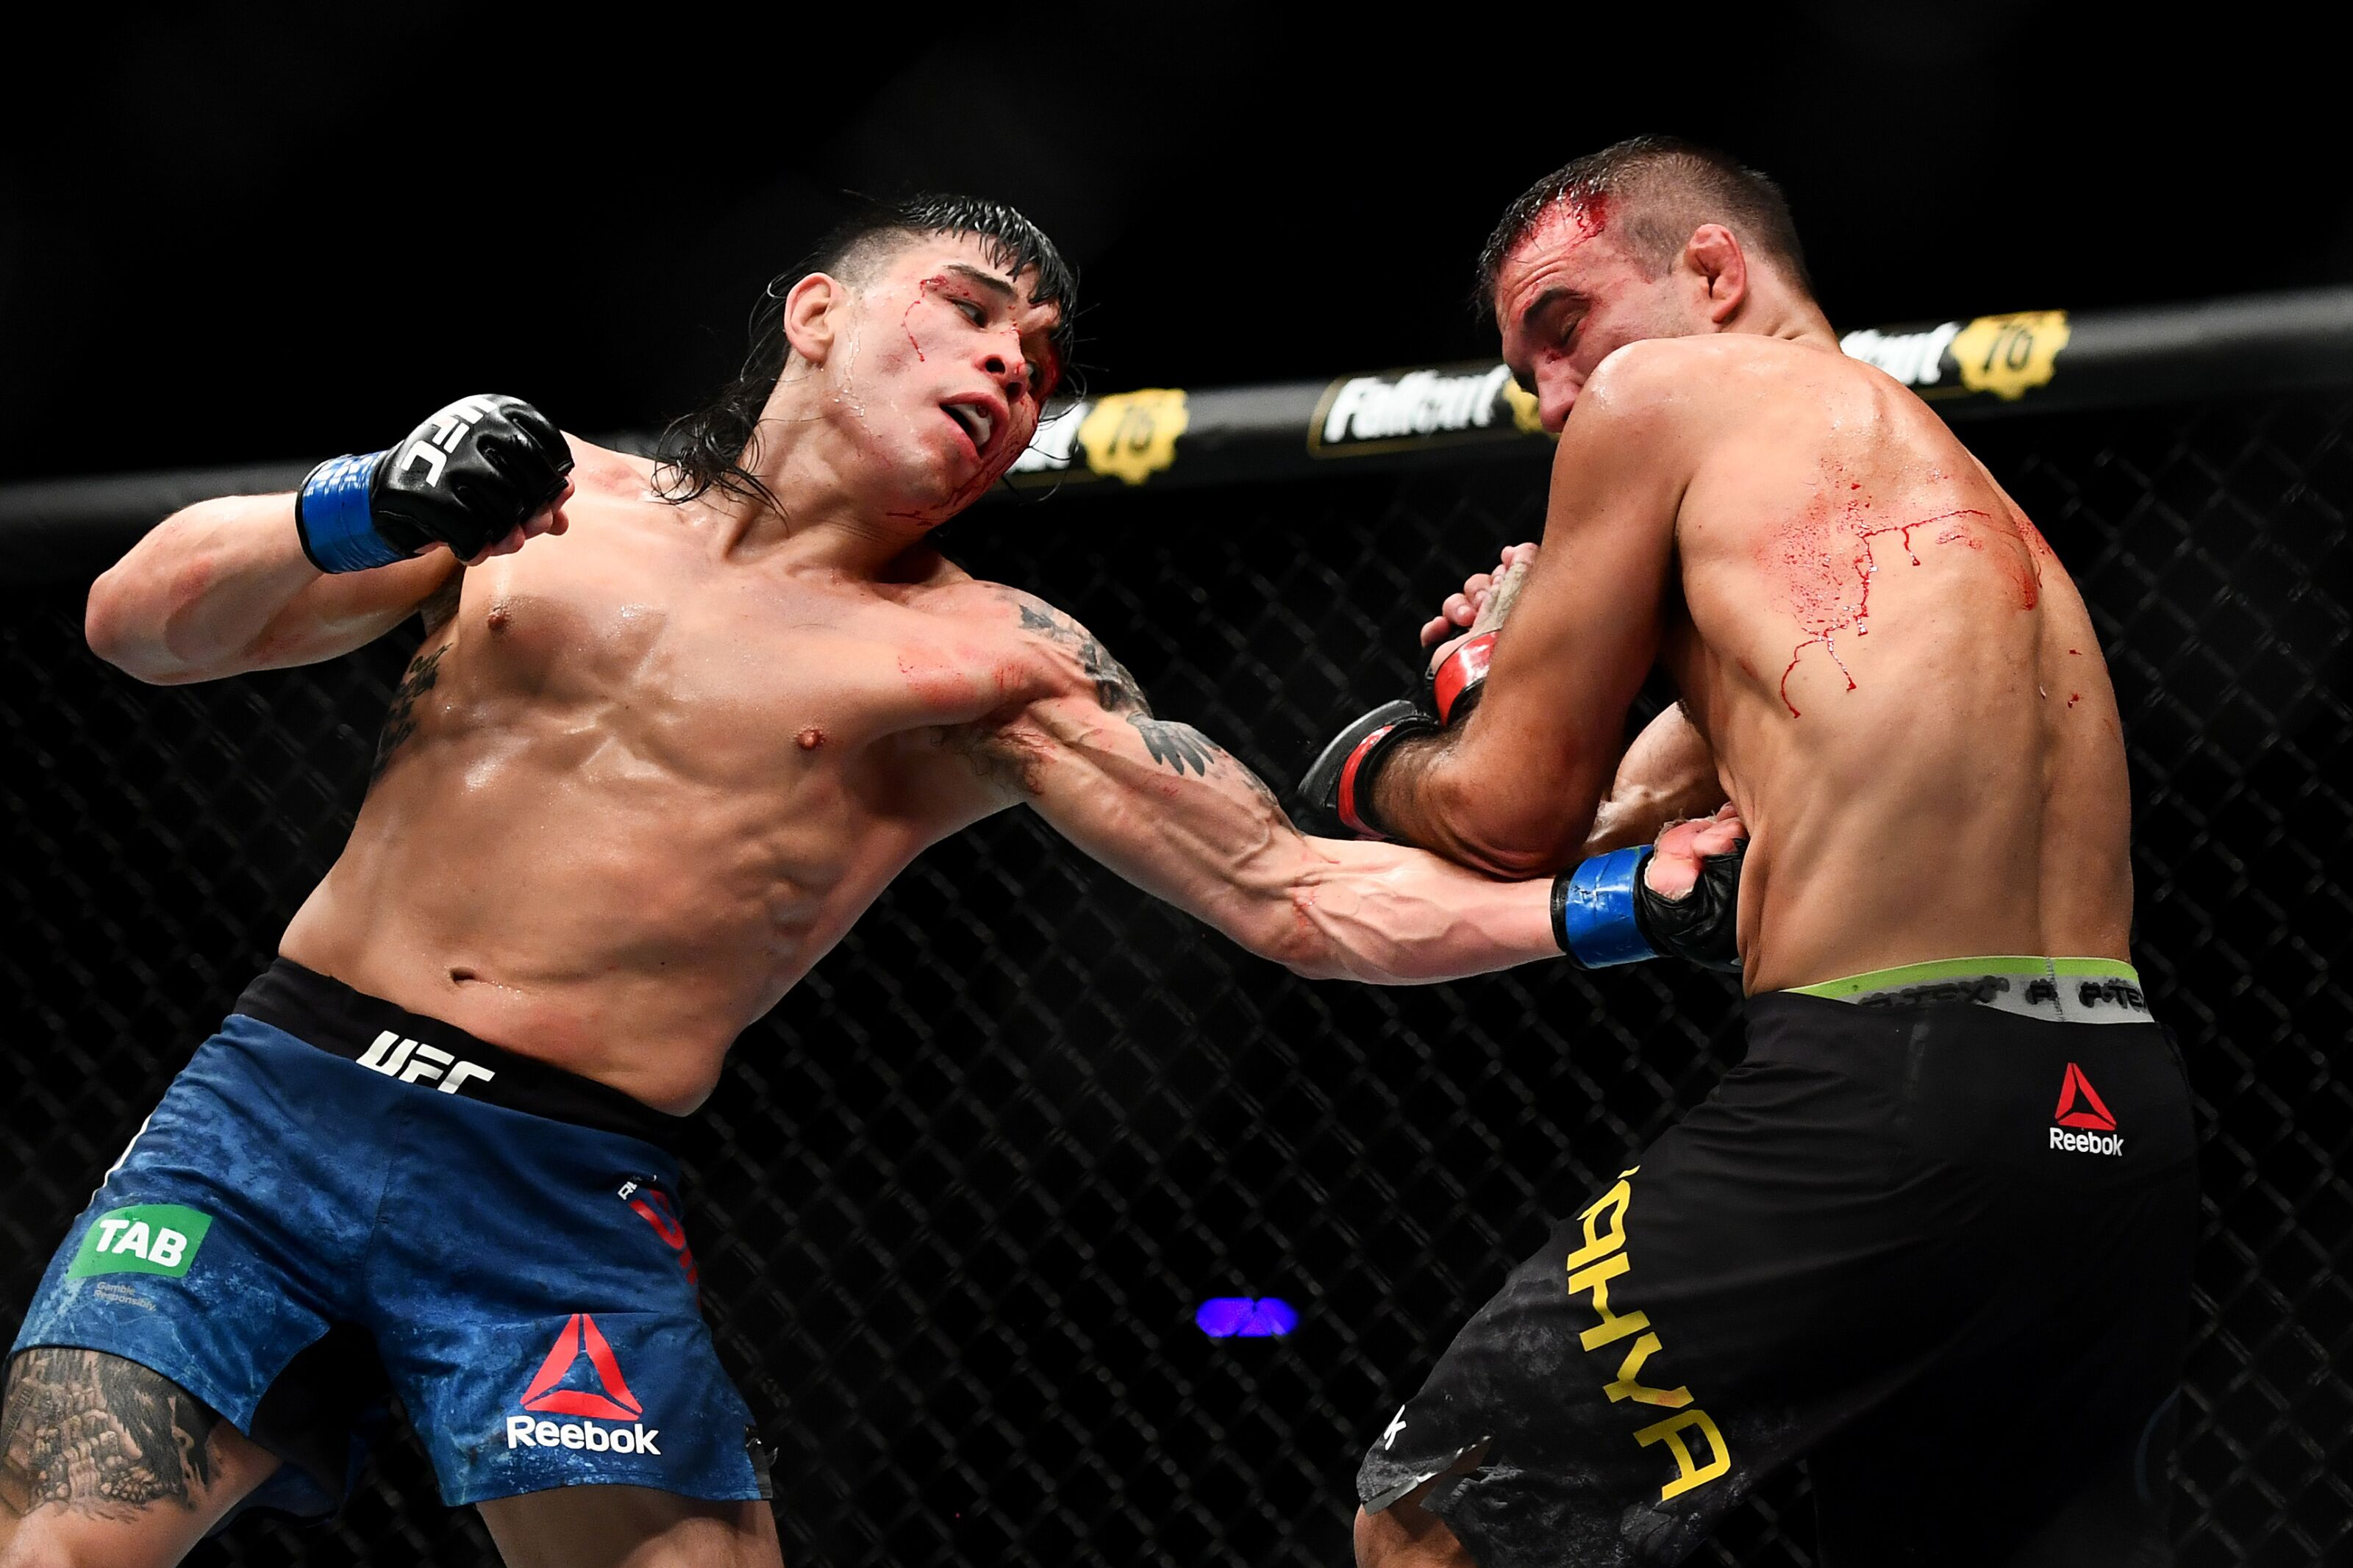 MELBOURNE, AUSTRALIA - FEBRUARY 10: Ricky Simon of the United States punches Rani Yahya of Brazil during their Bantamweight bout during UFC234 at Rod Laver Arena on February 10, 2019 in Melbourne, Australia. (Photo by Quinn Rooney/Getty Images)